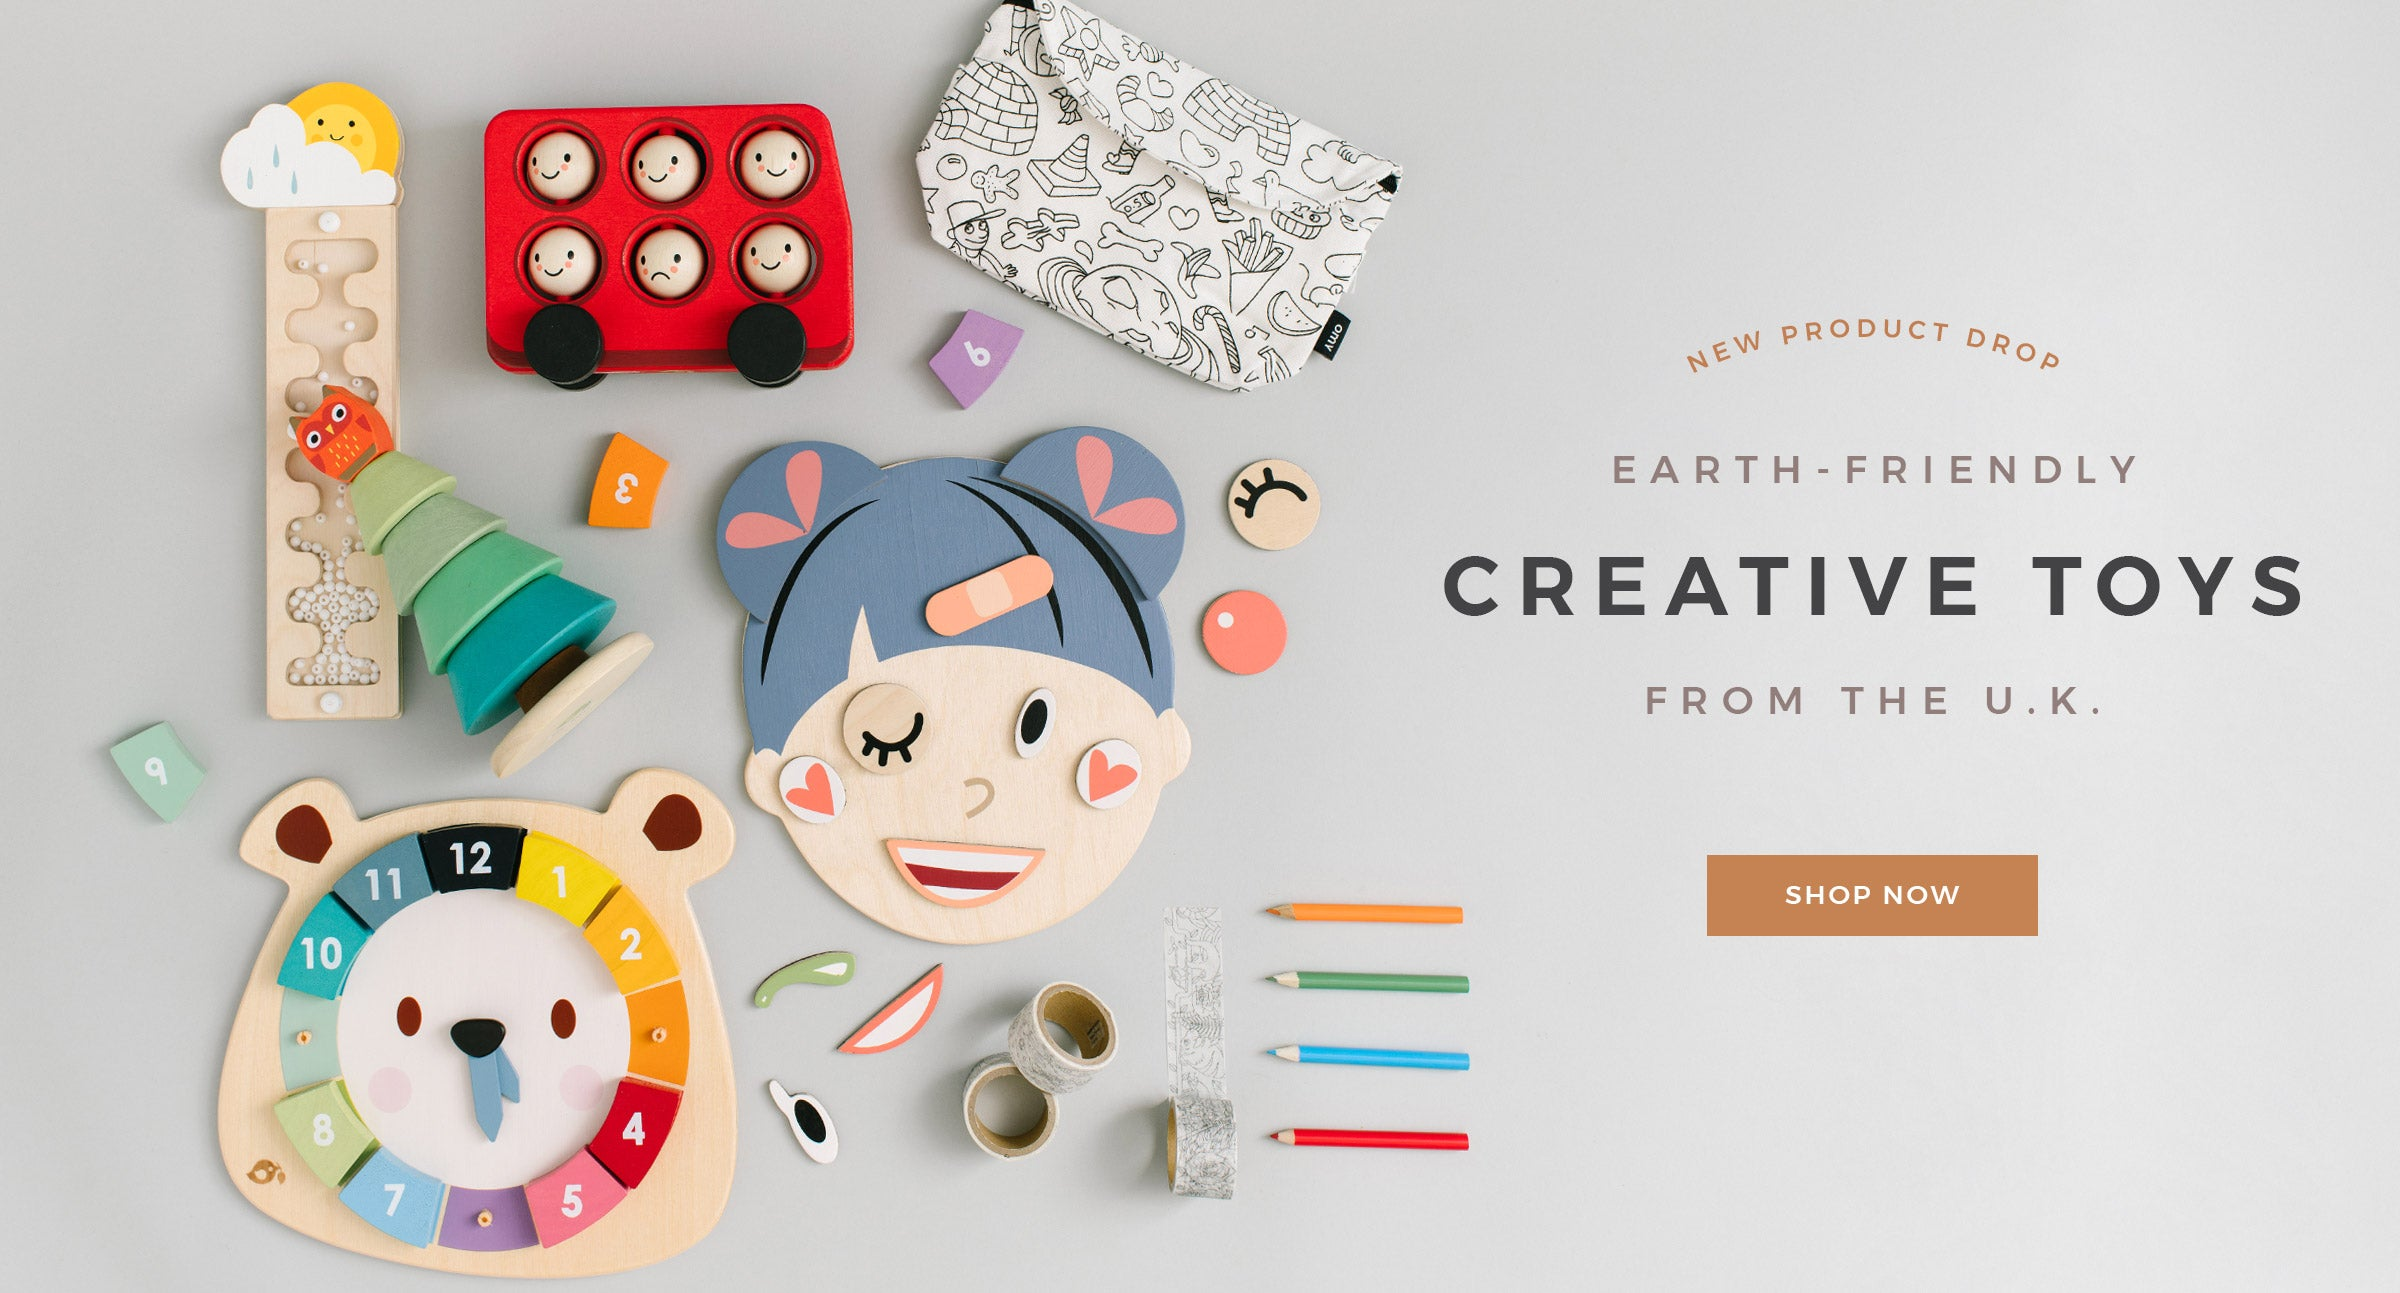 Earth-Friendly Creative Toys from the U.K.